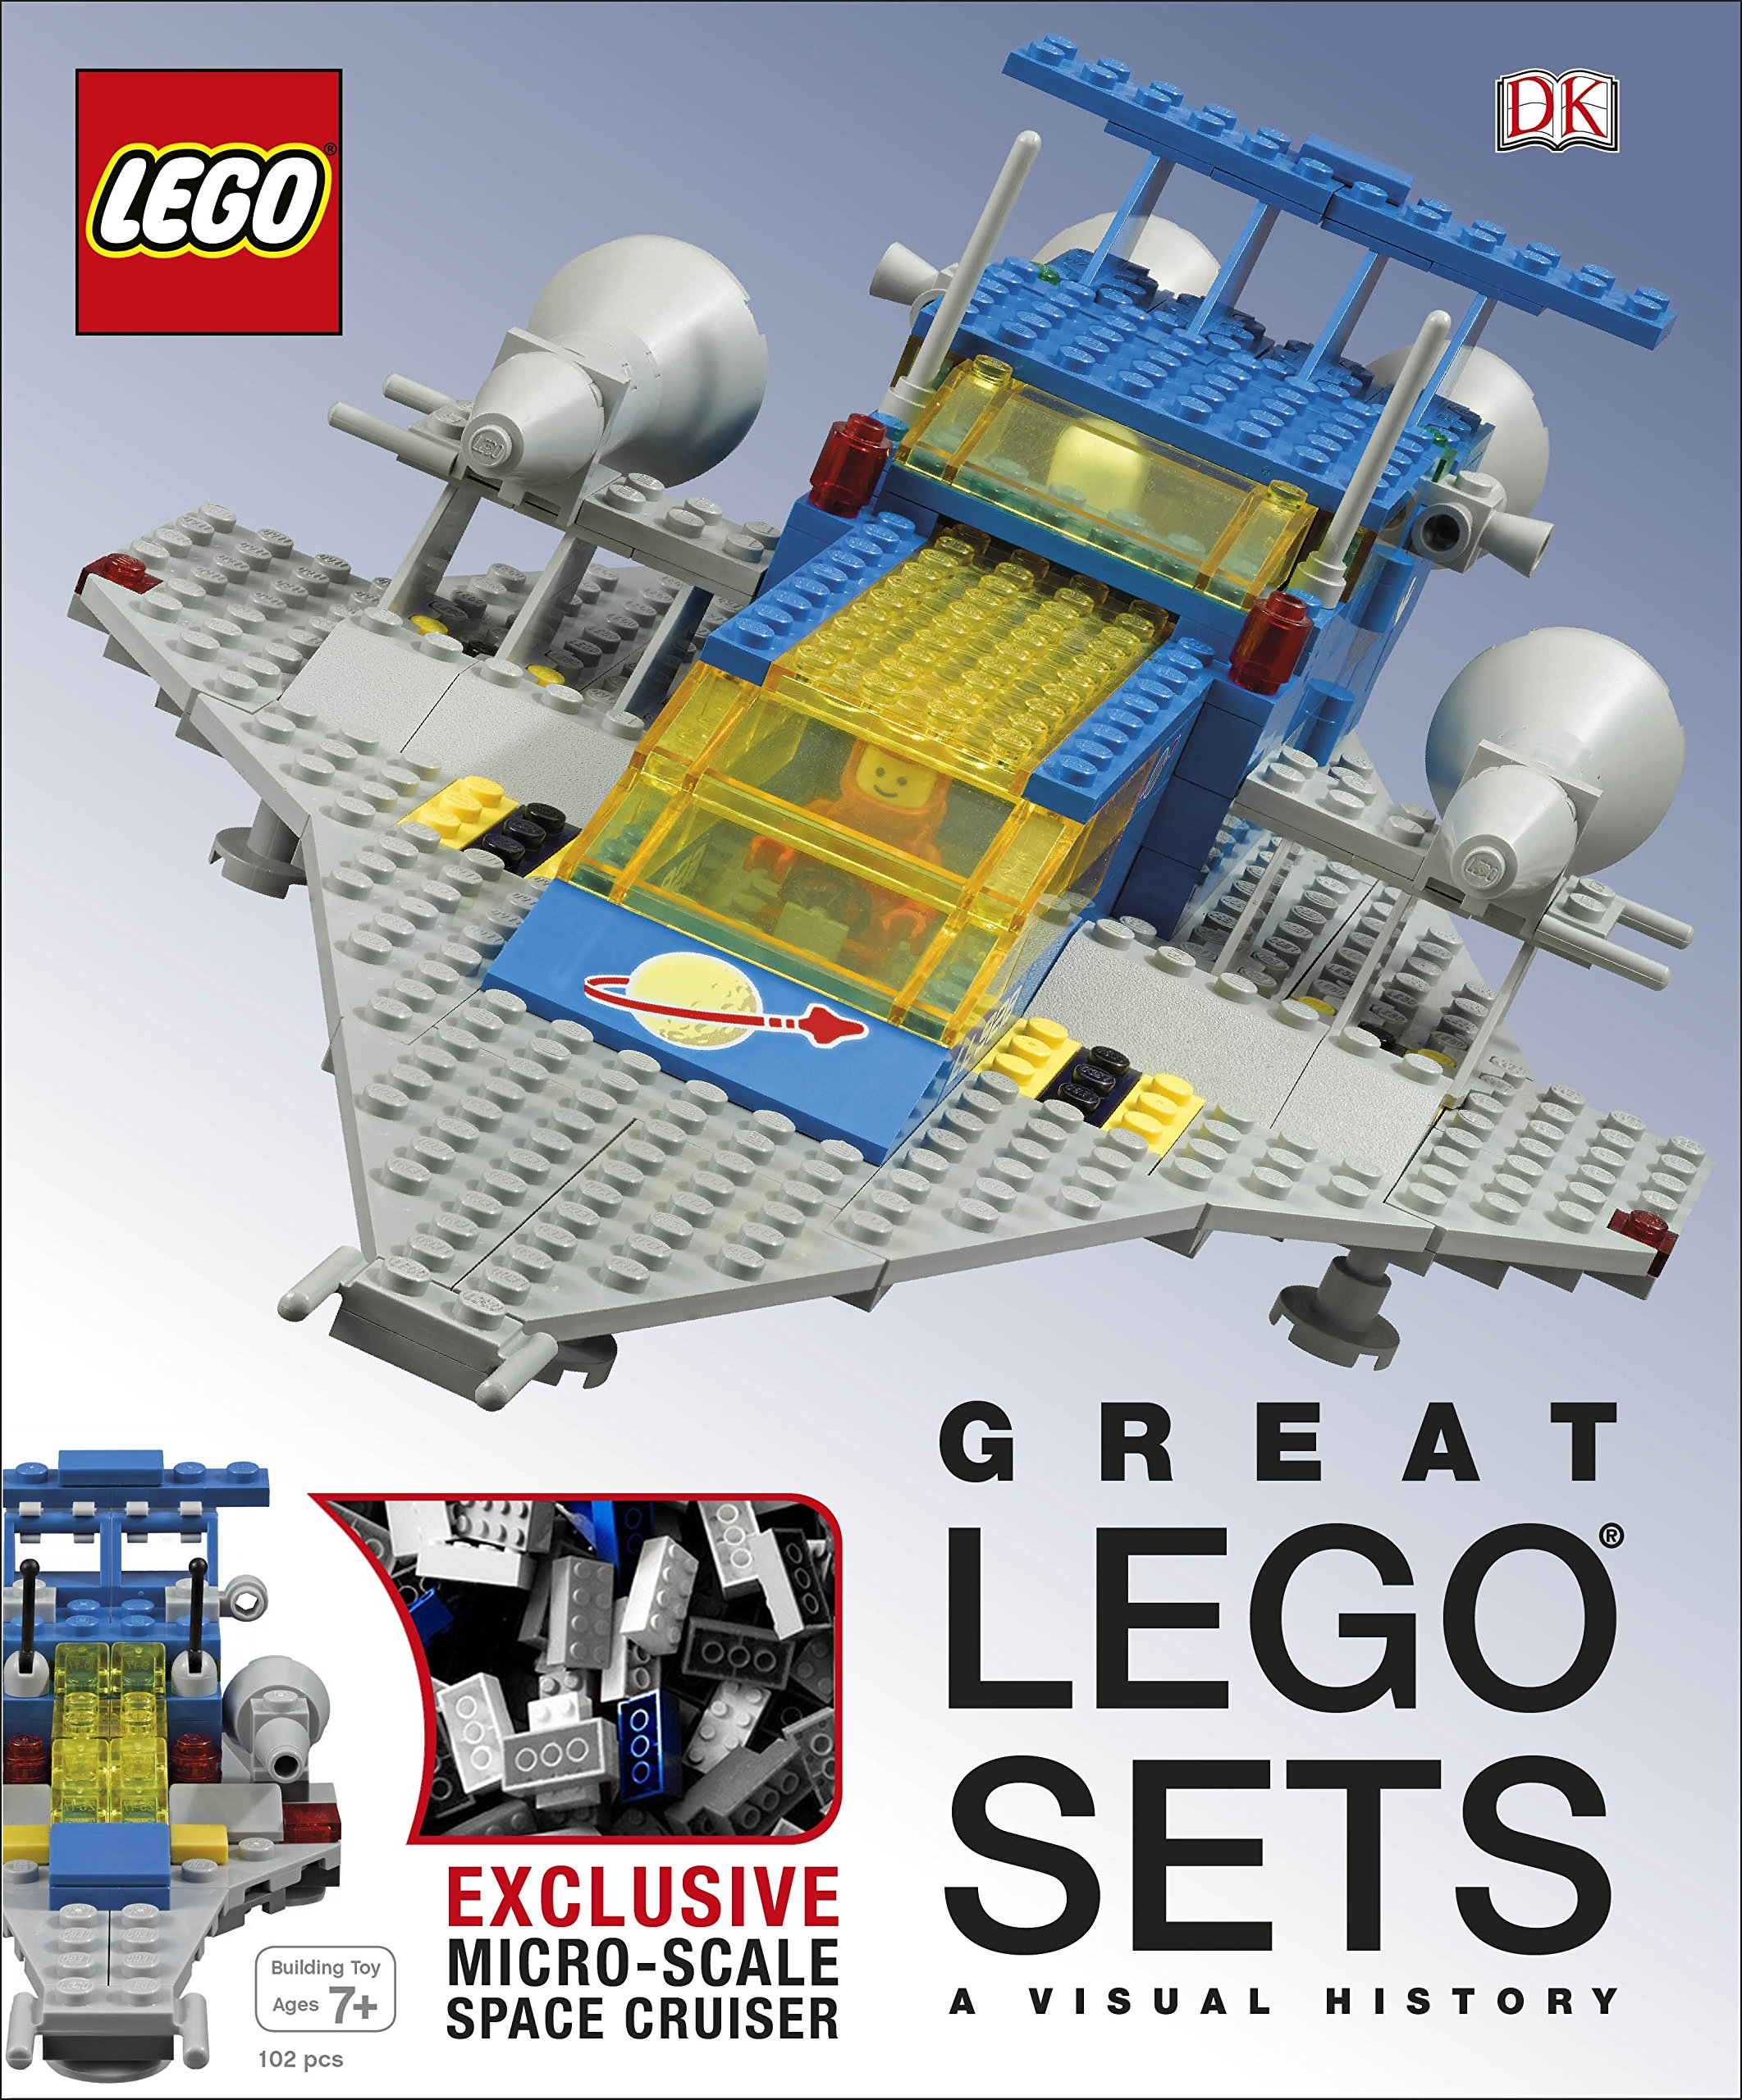 Image OfGreat LEGO® Sets A Visual History: With Exclusive Micro-Scale Space Cruiser